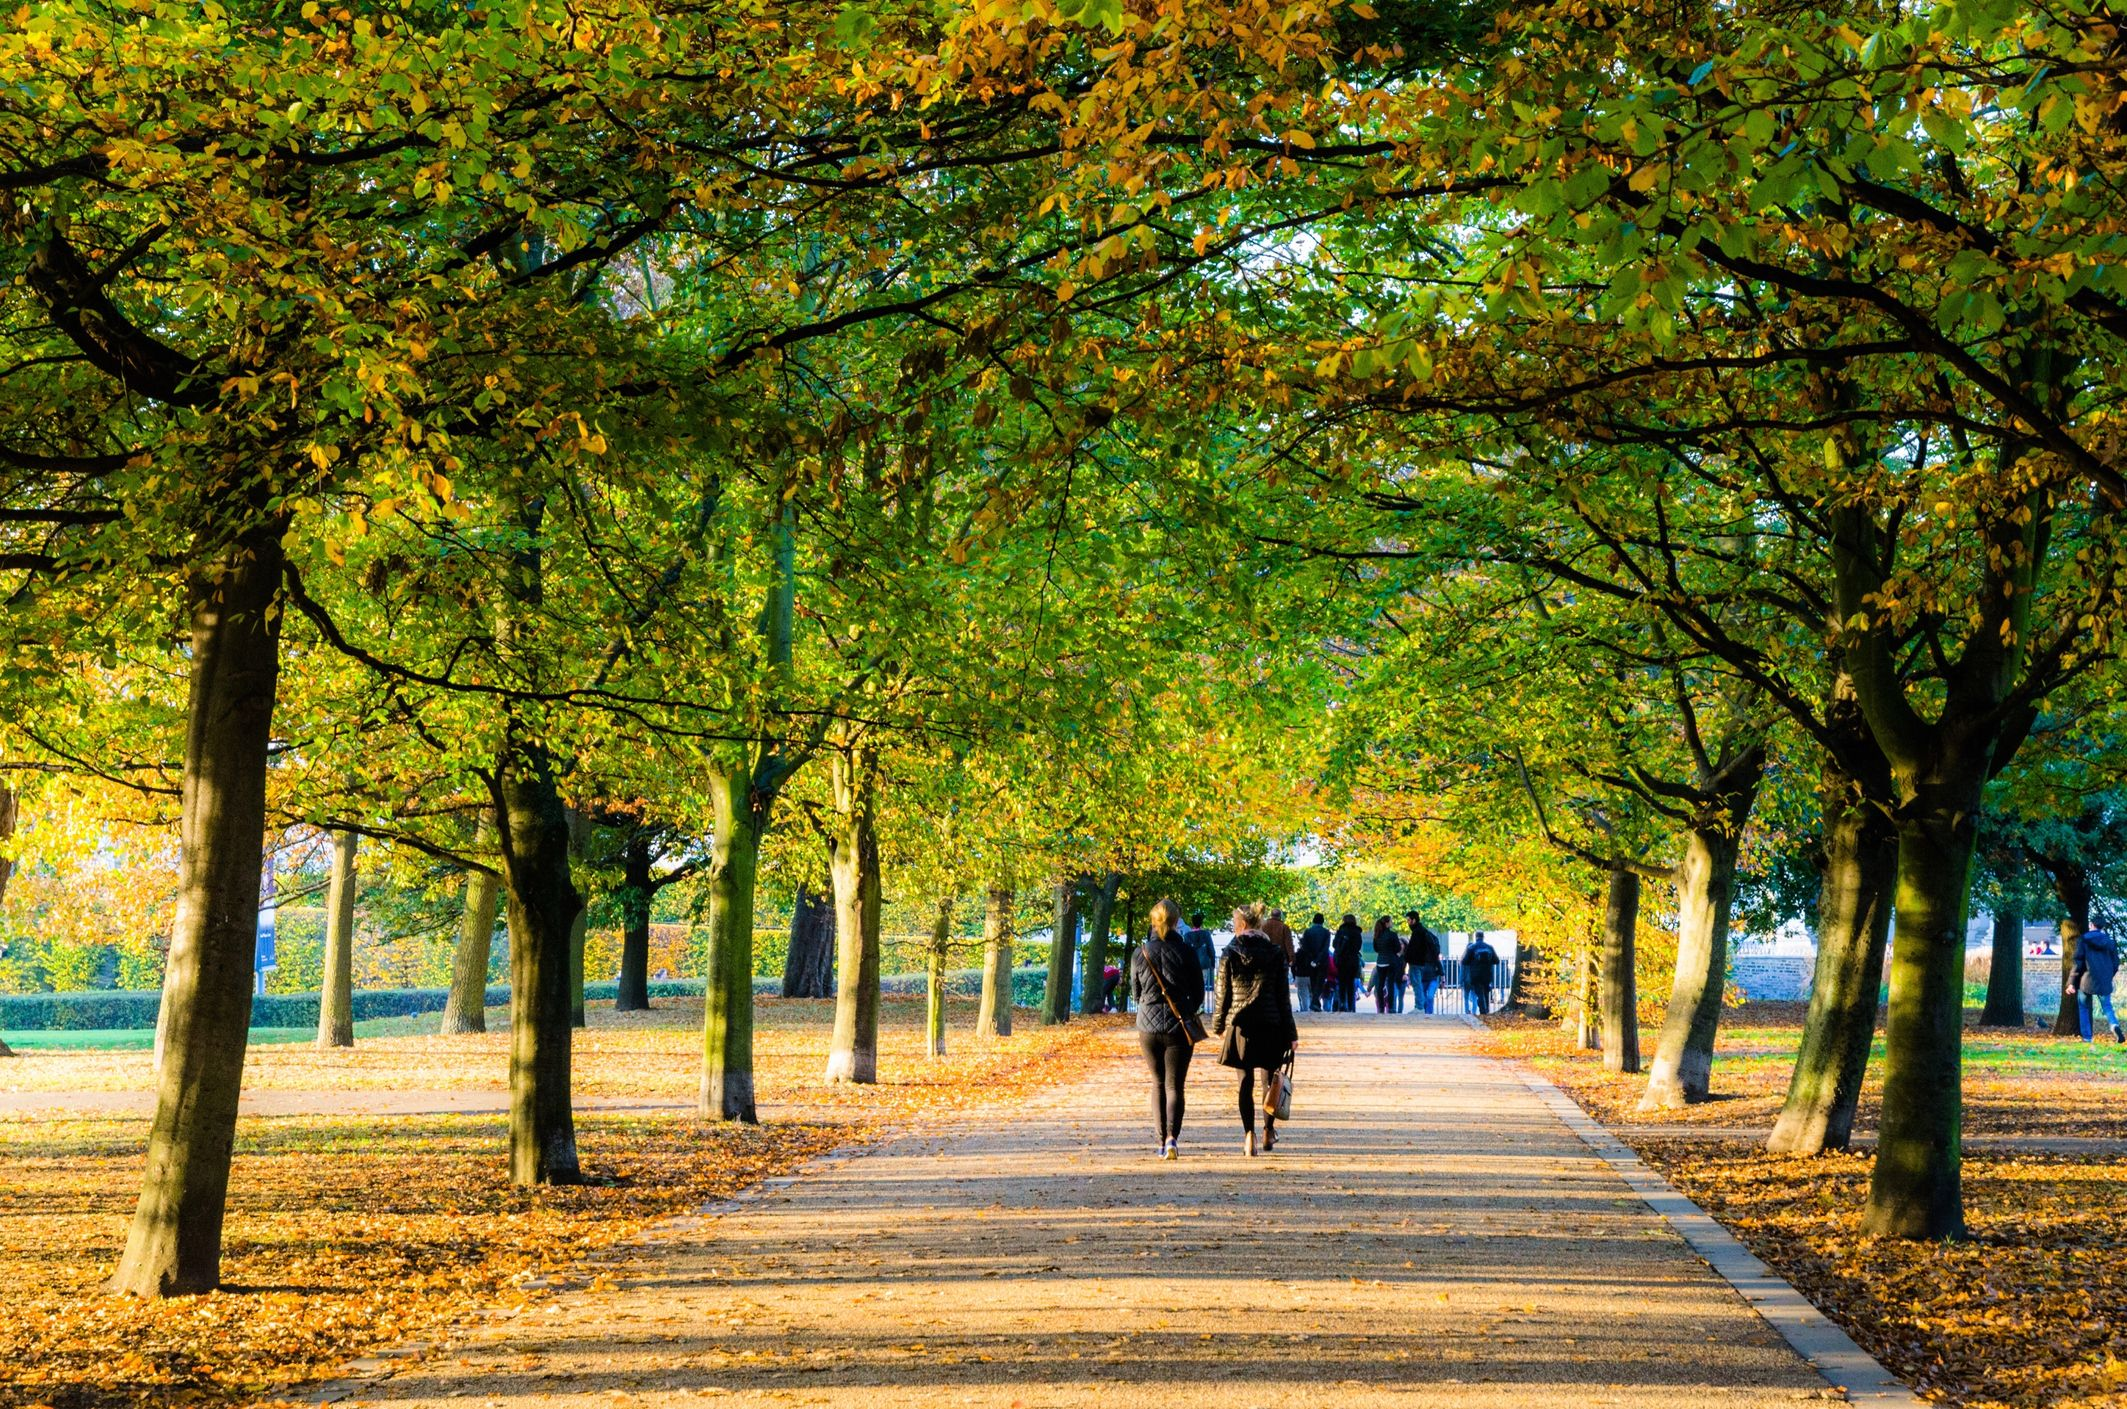 Spending 20 minutes in a park each day can officially make you happier